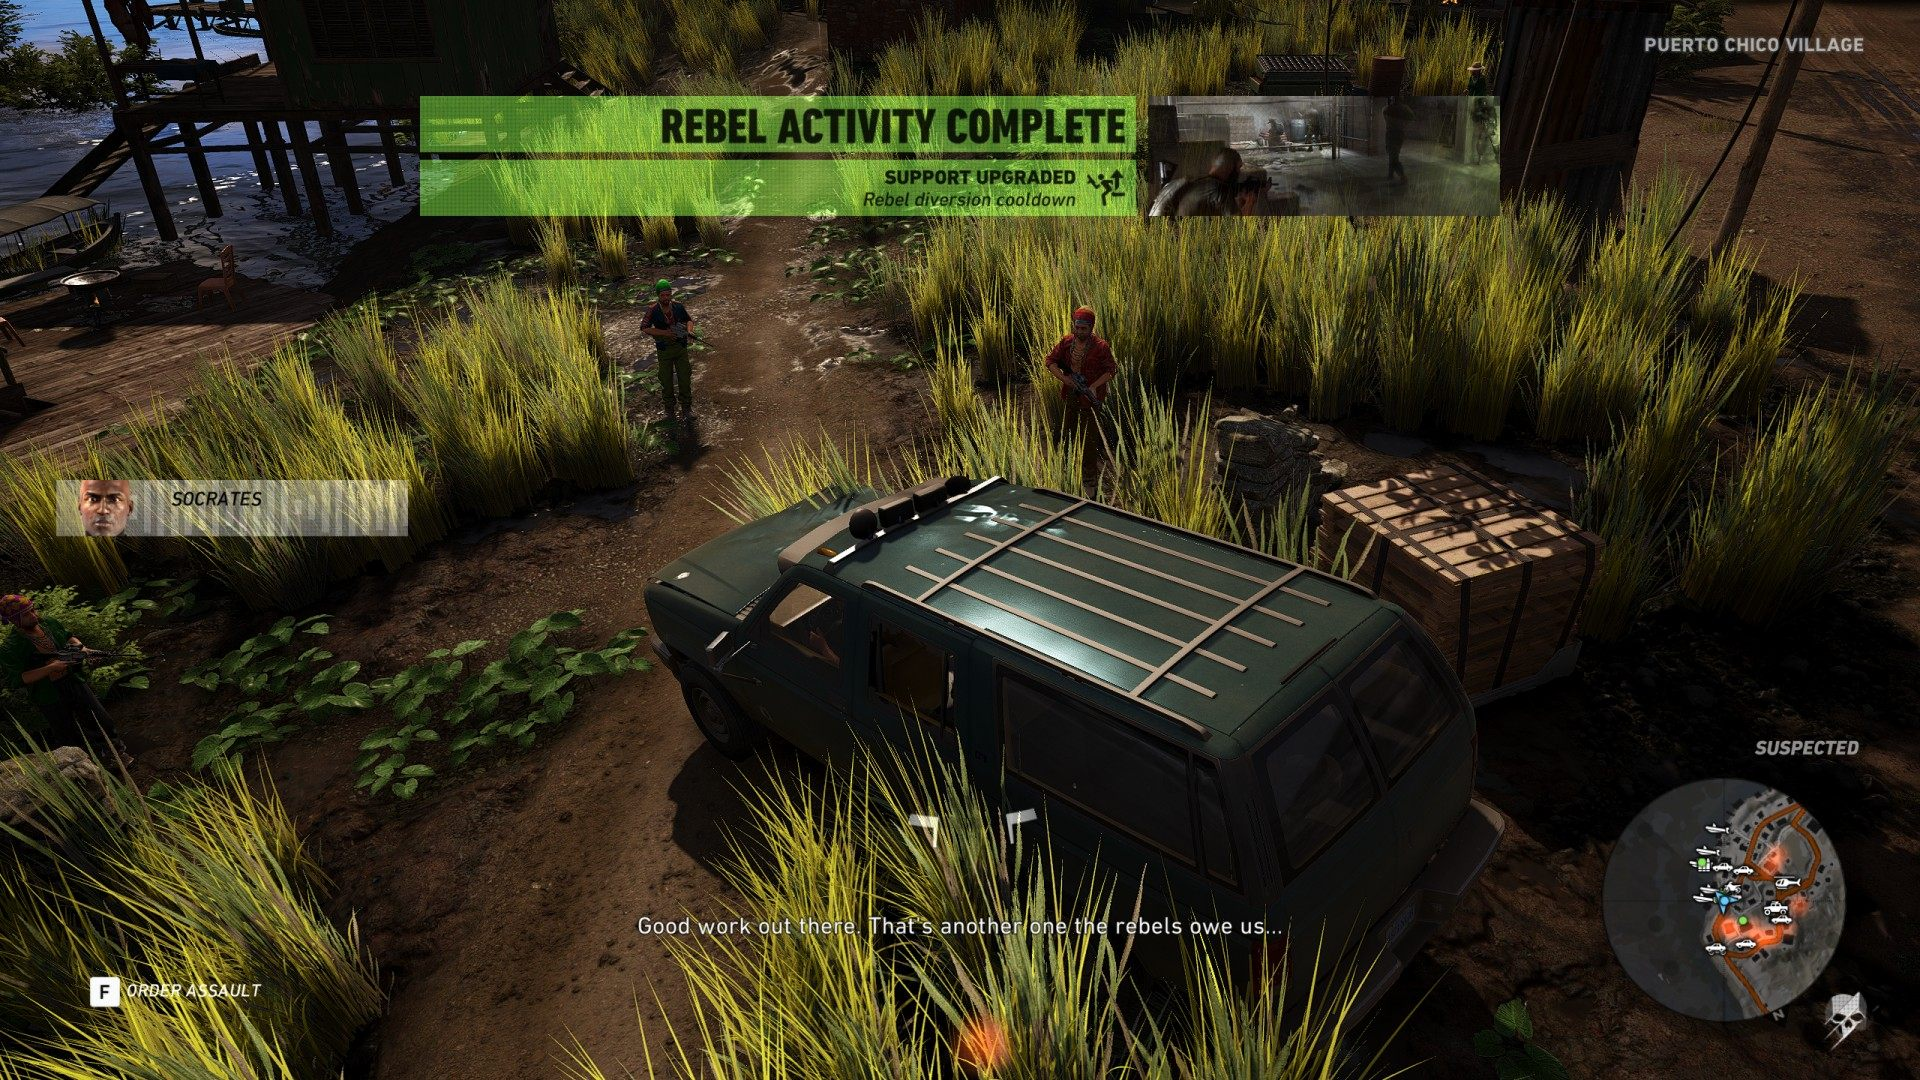 Save the Rebel VIP, Ghost Recon: Wildlands Mission